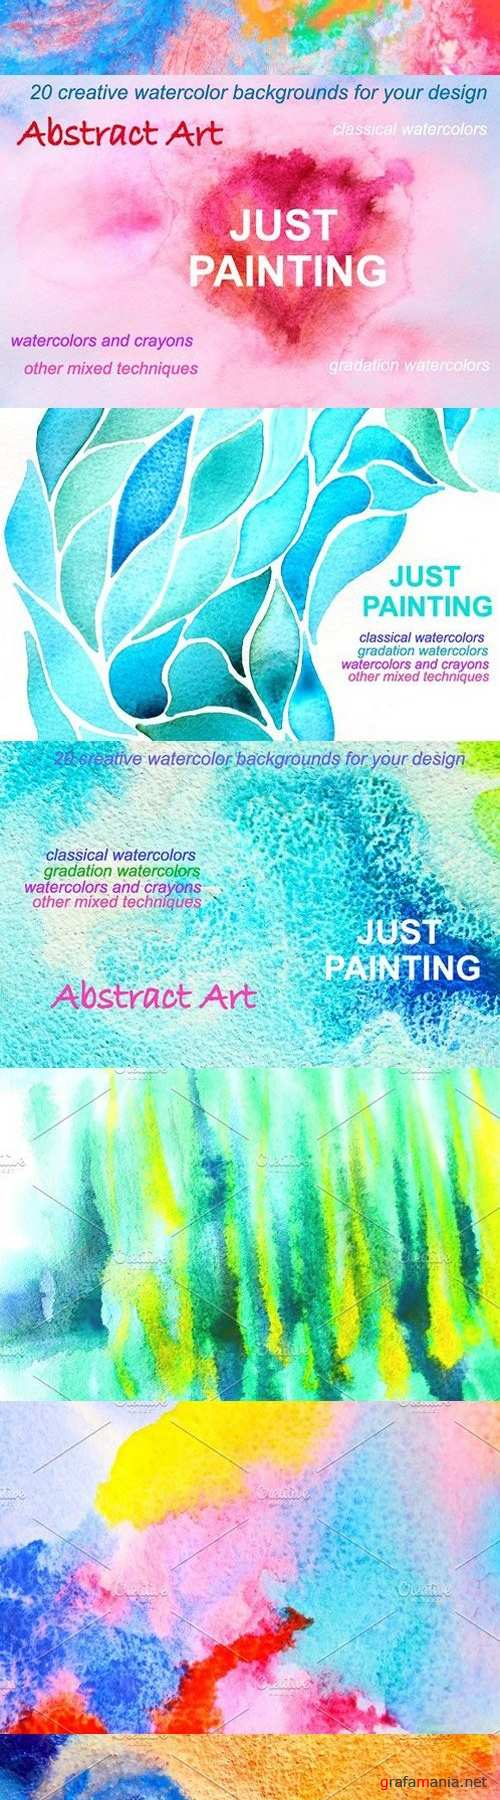 20 Abstract Watercolor Backgrounds 1711227